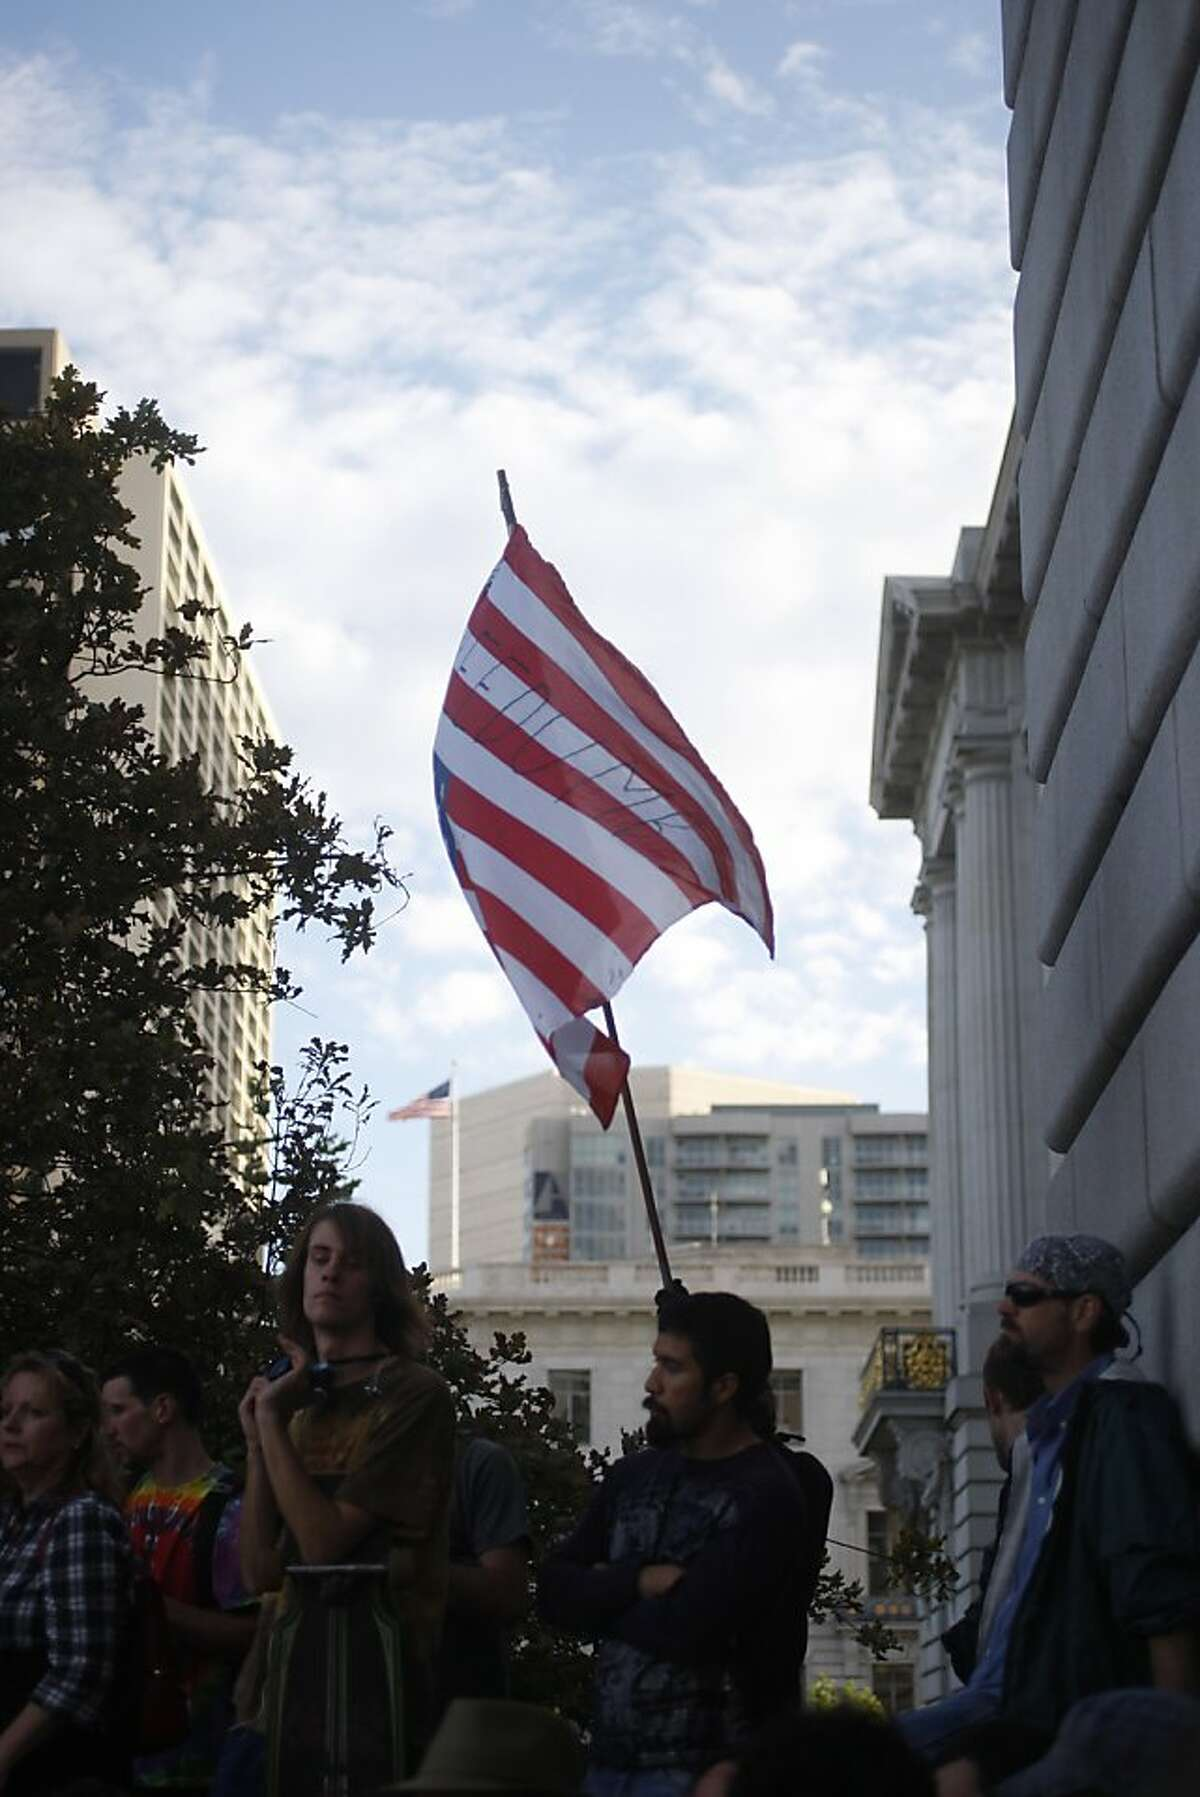 Protestors in the Occupy SF movement demonstrate outside of City Hall in San Francisco, Calif., on Saturday, Oct. 15, 2011.